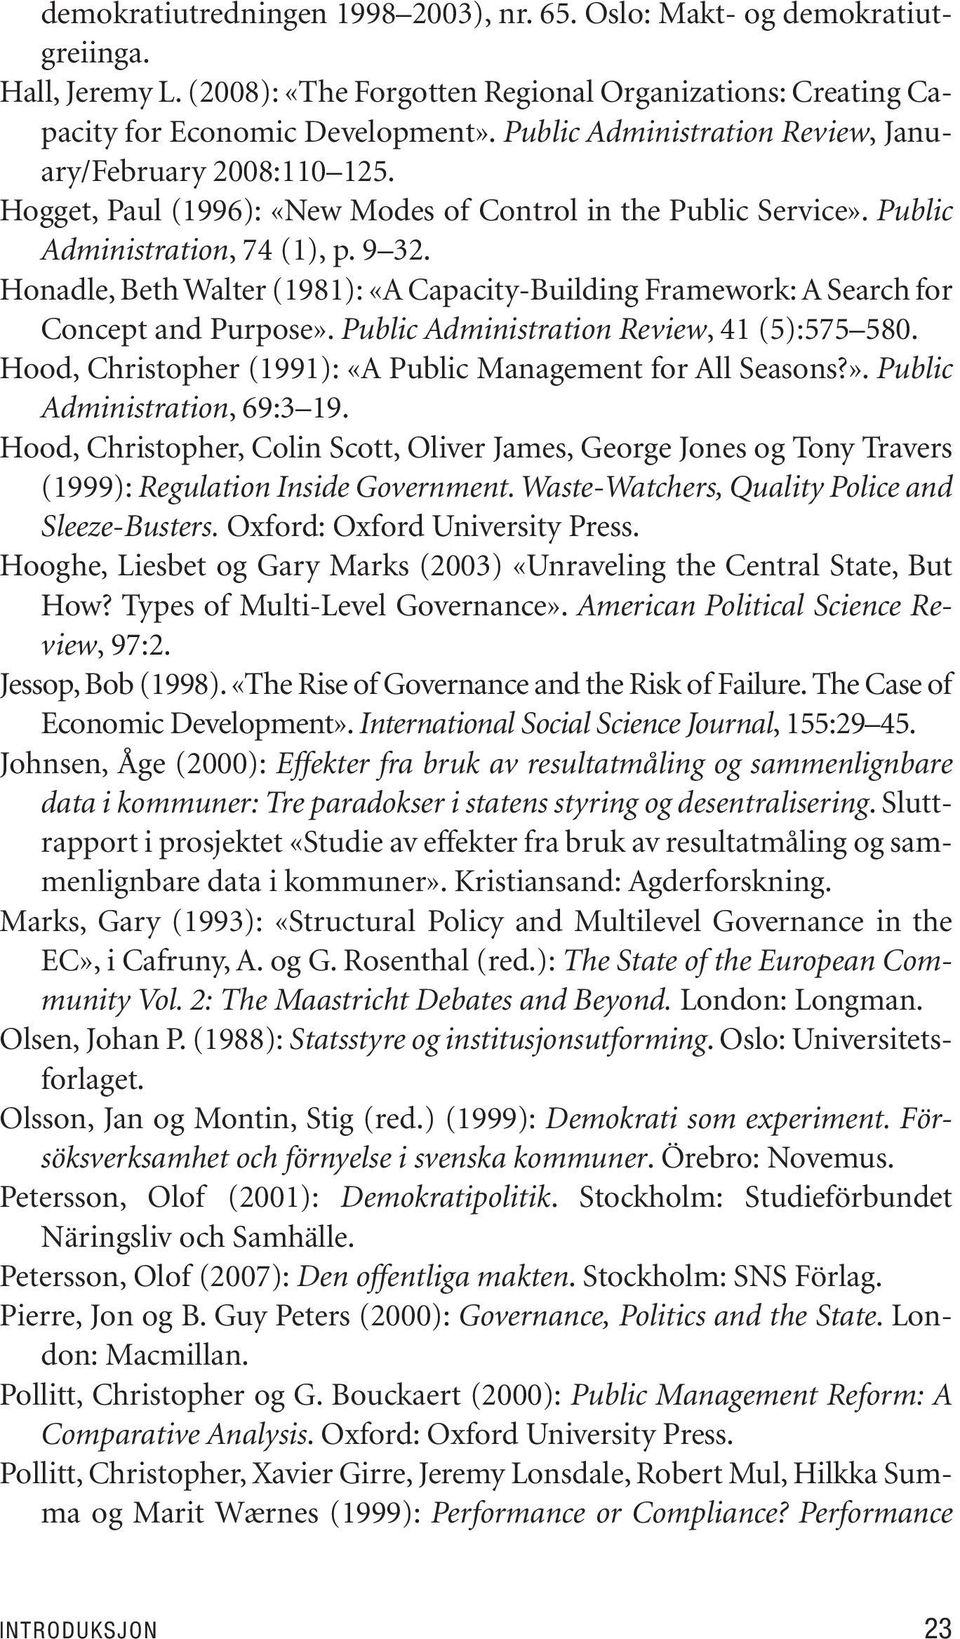 Hog get, Paul (1996): «New Modes of Con trol in the Pub lic Ser vi ce». Pub lic Administration, 74 (1), p. 9 32.